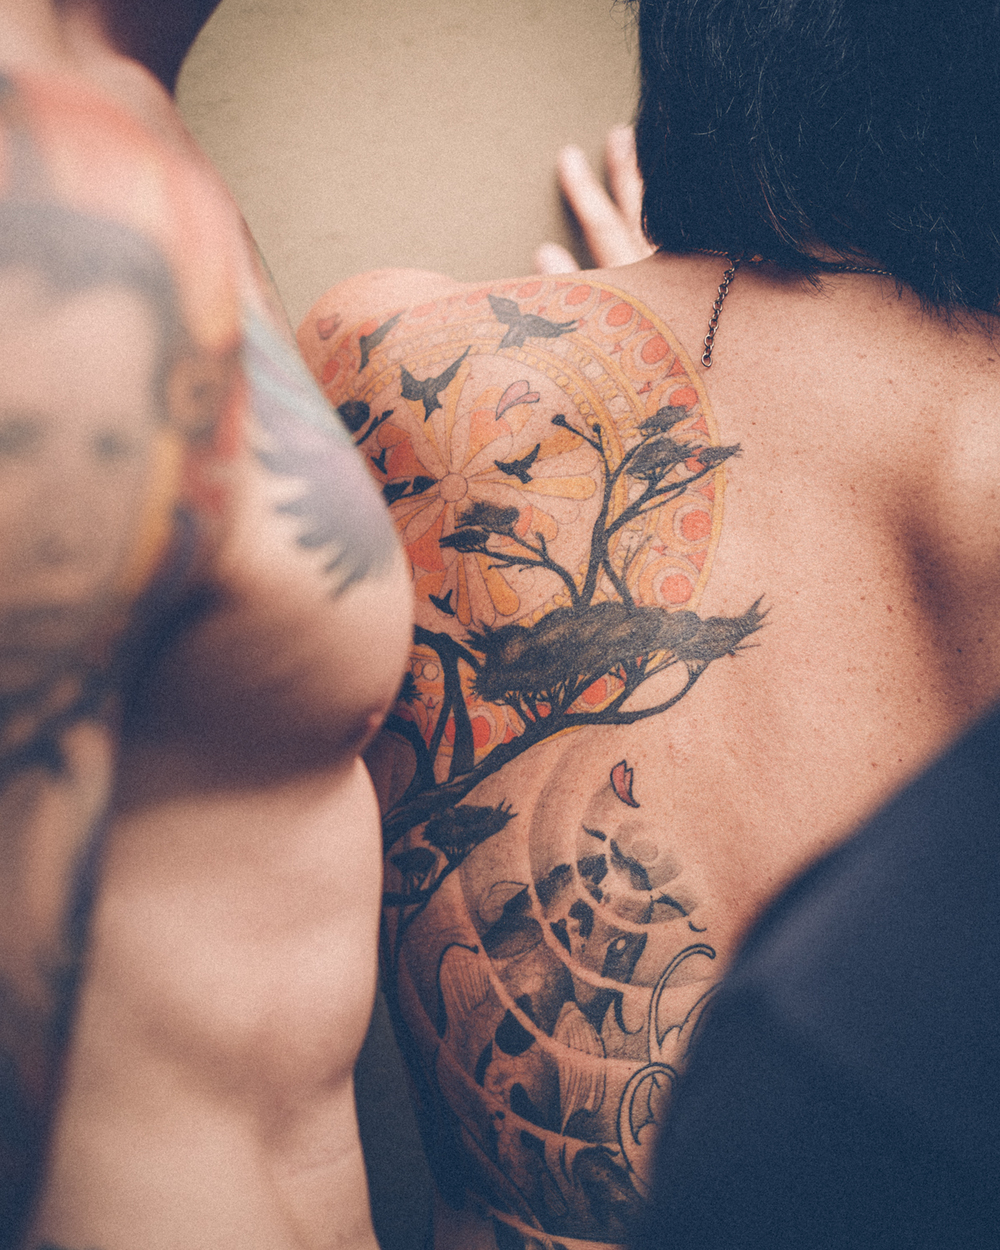 Union-of-Makers-Tattoo-Artistry-Part-Two-07.jpg